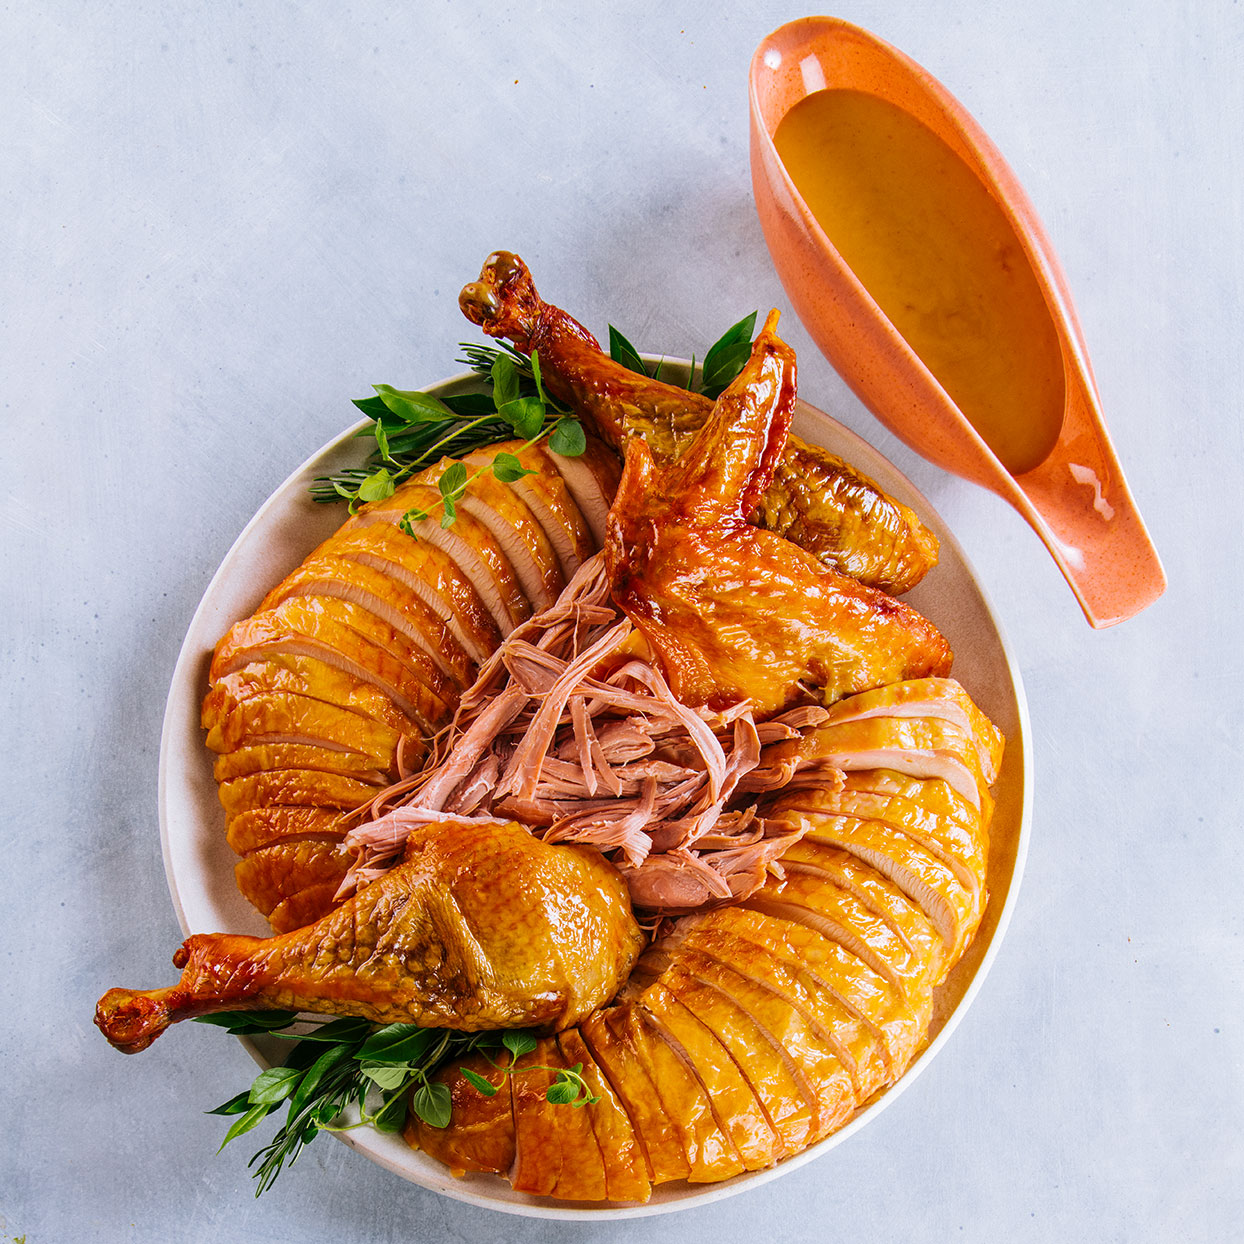 Traditional Roast Turkey with Giblet Gravy Hugh Acheson